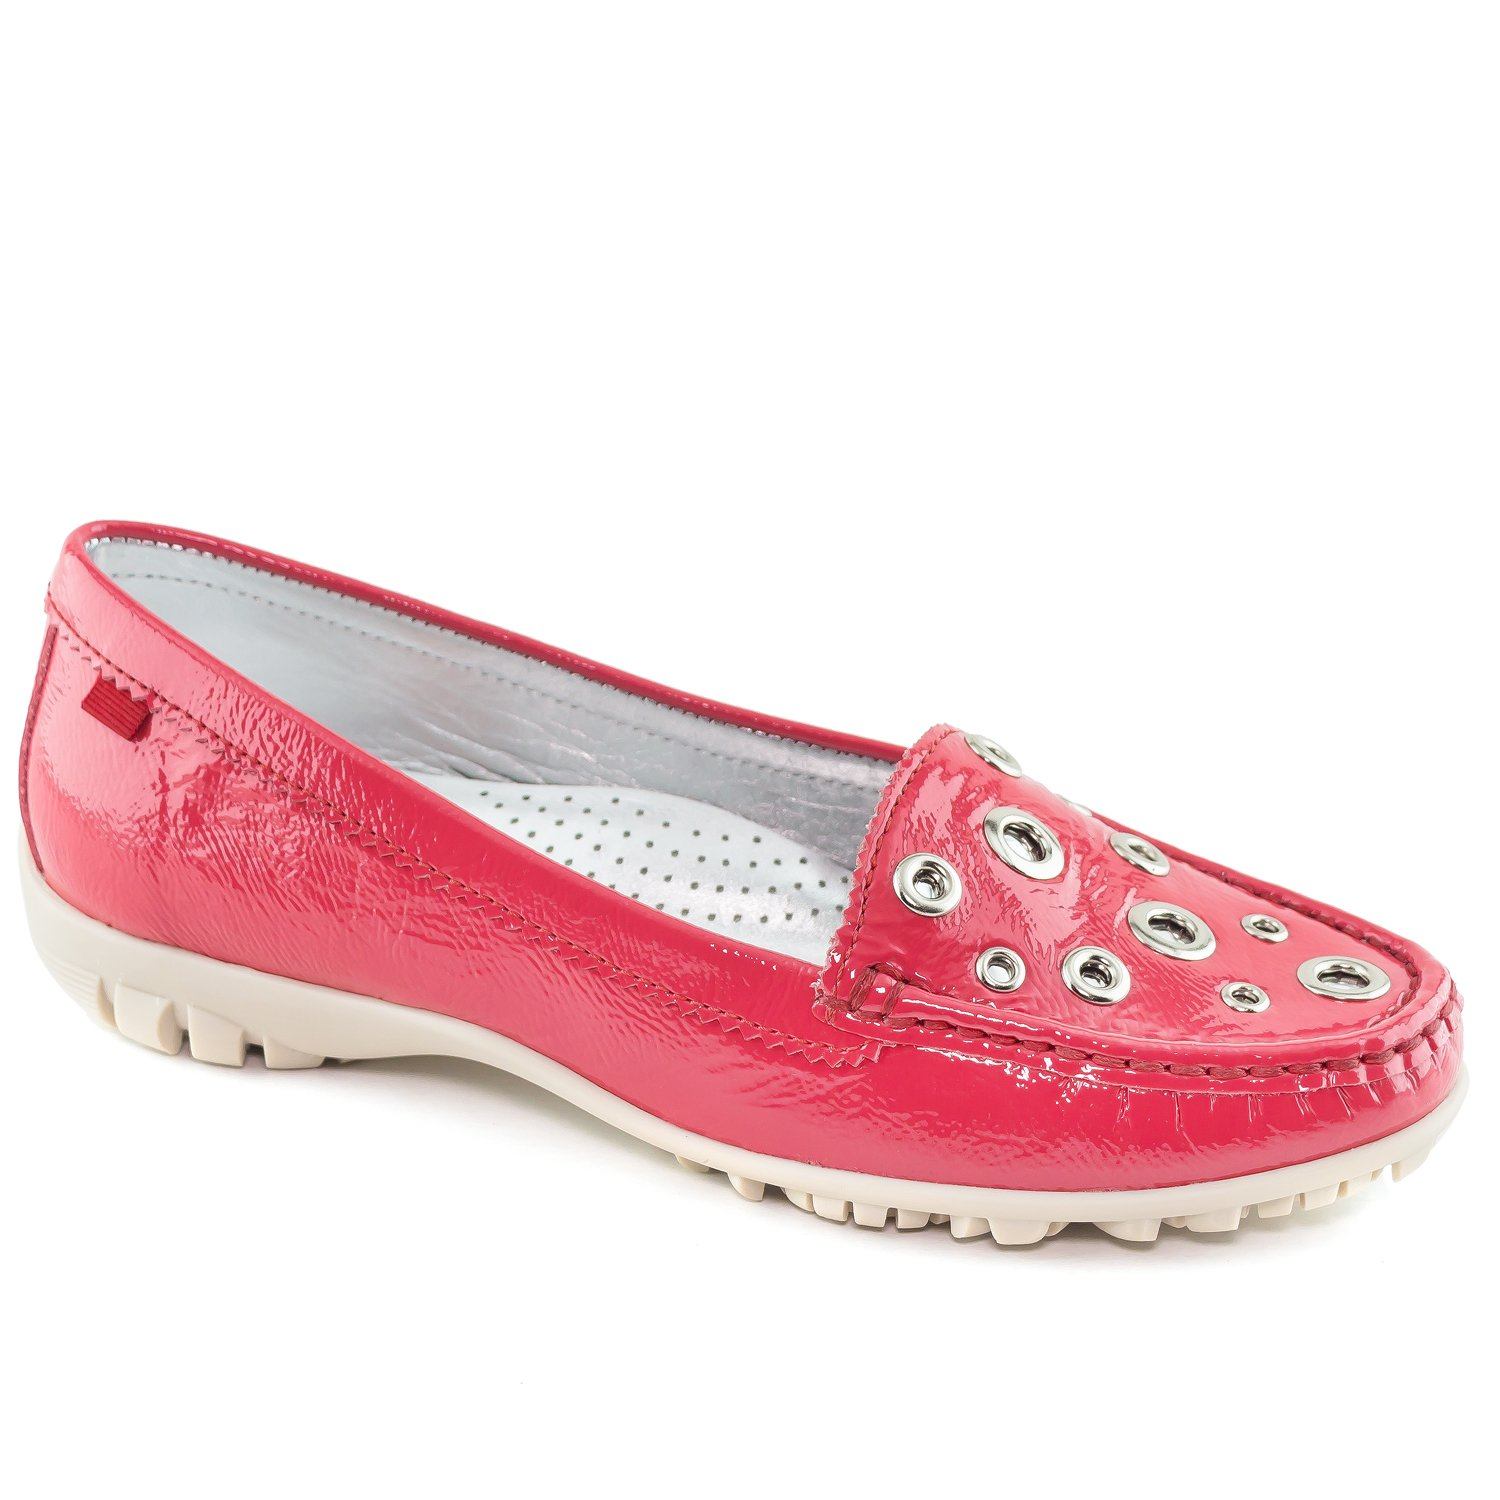 MARC JOSEPH NEW YORK Women's Fashion Shoes Mott Street Golf Pink Moccassin Size 6.5